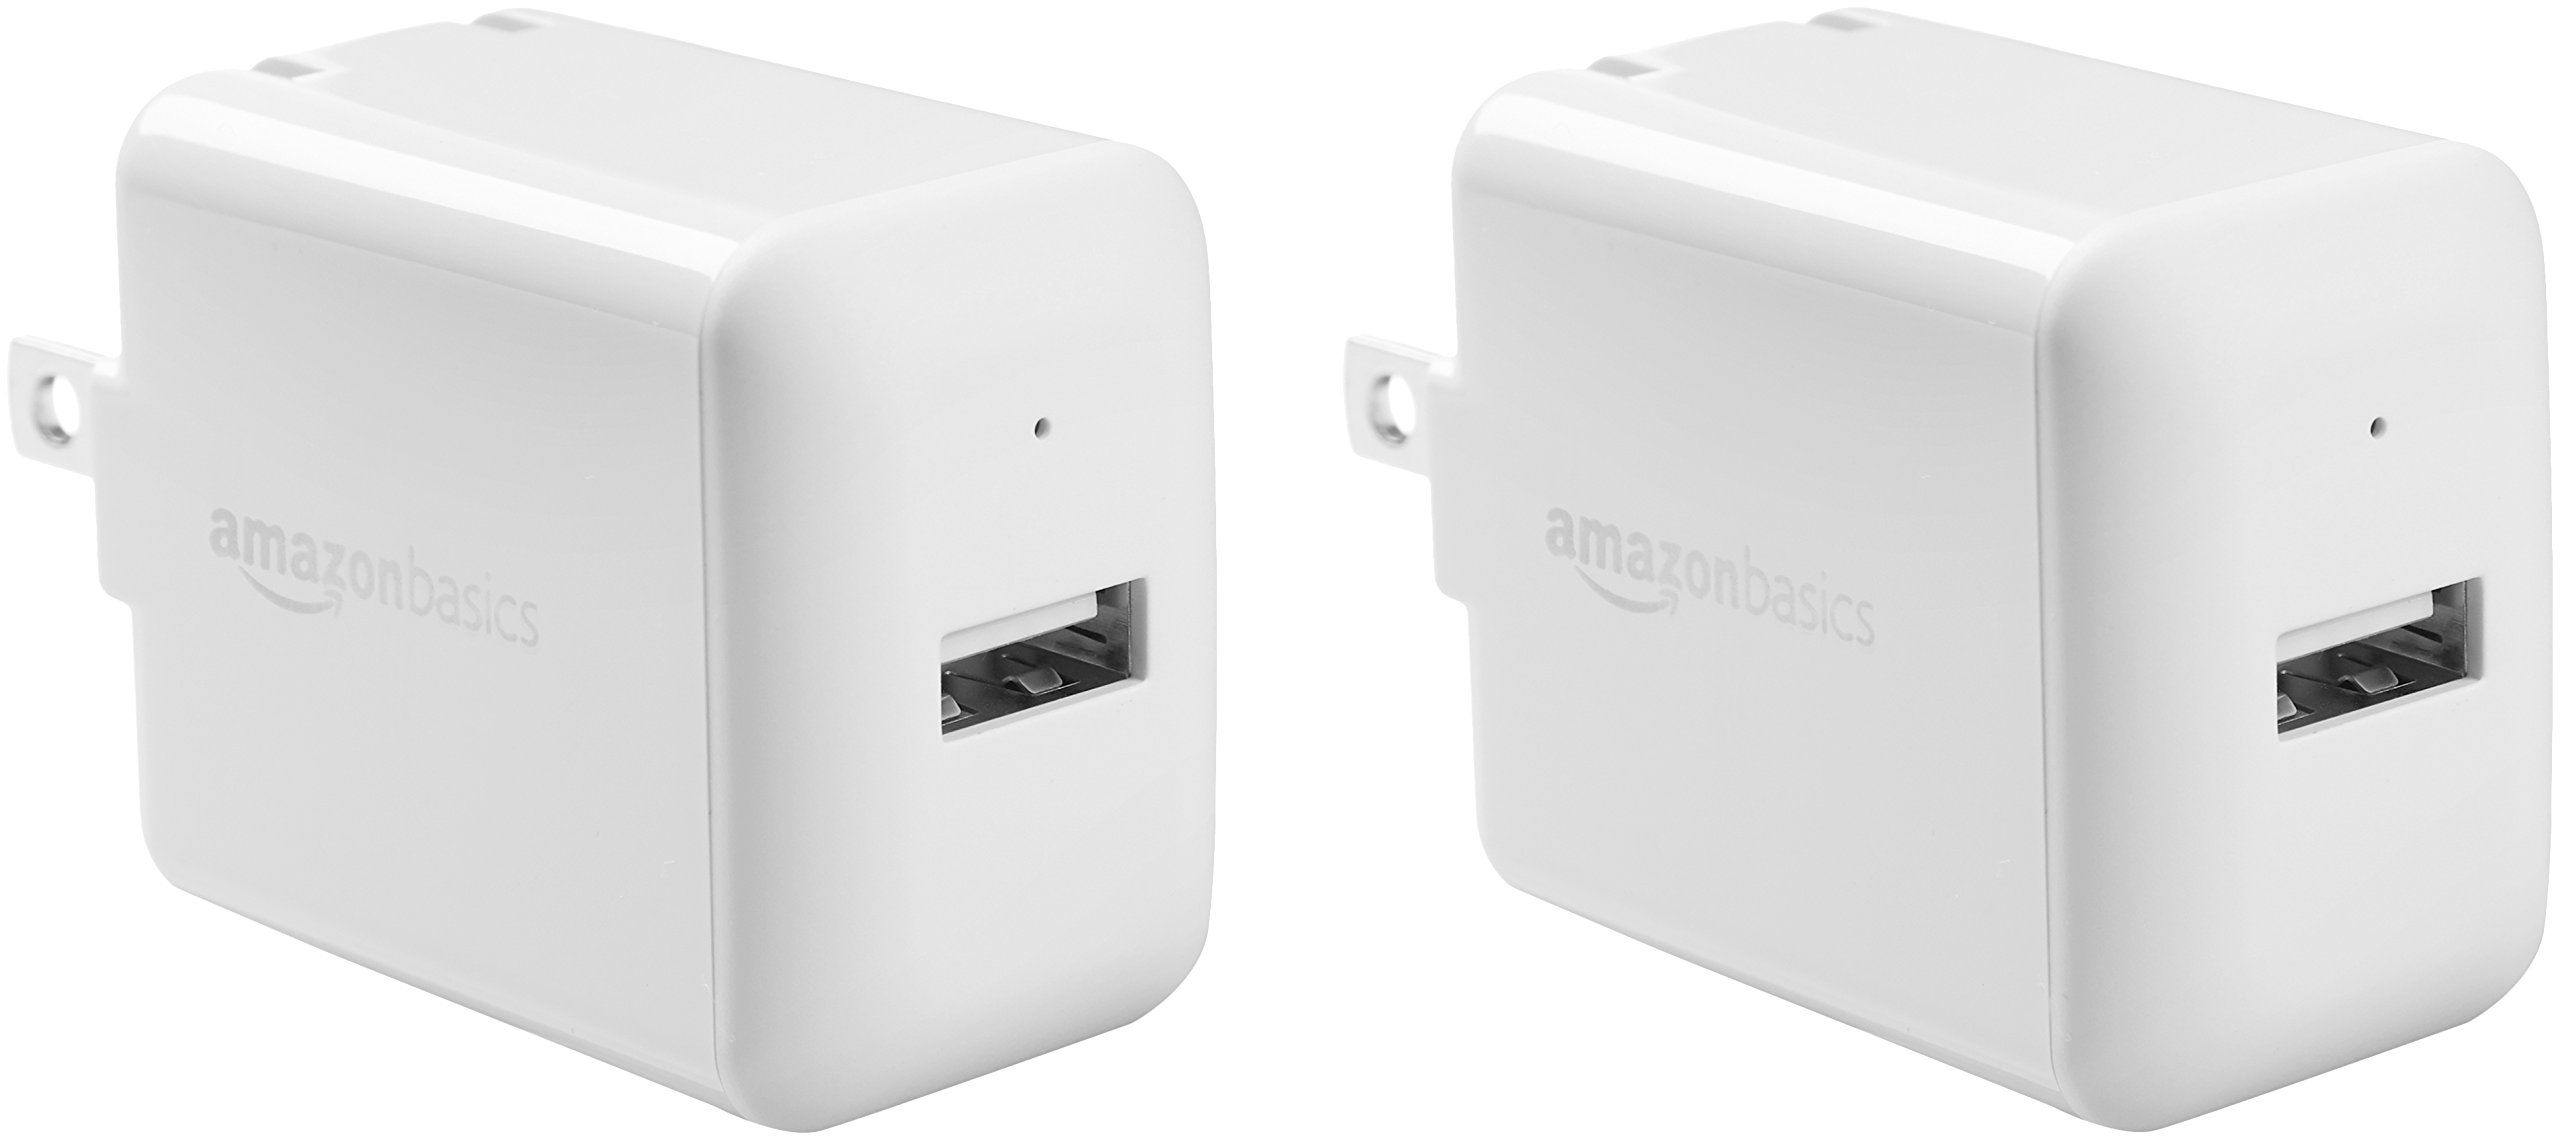 AmazonBasics One-Port USB Wall Charger (2.4 Amp) - White (2-Pack)